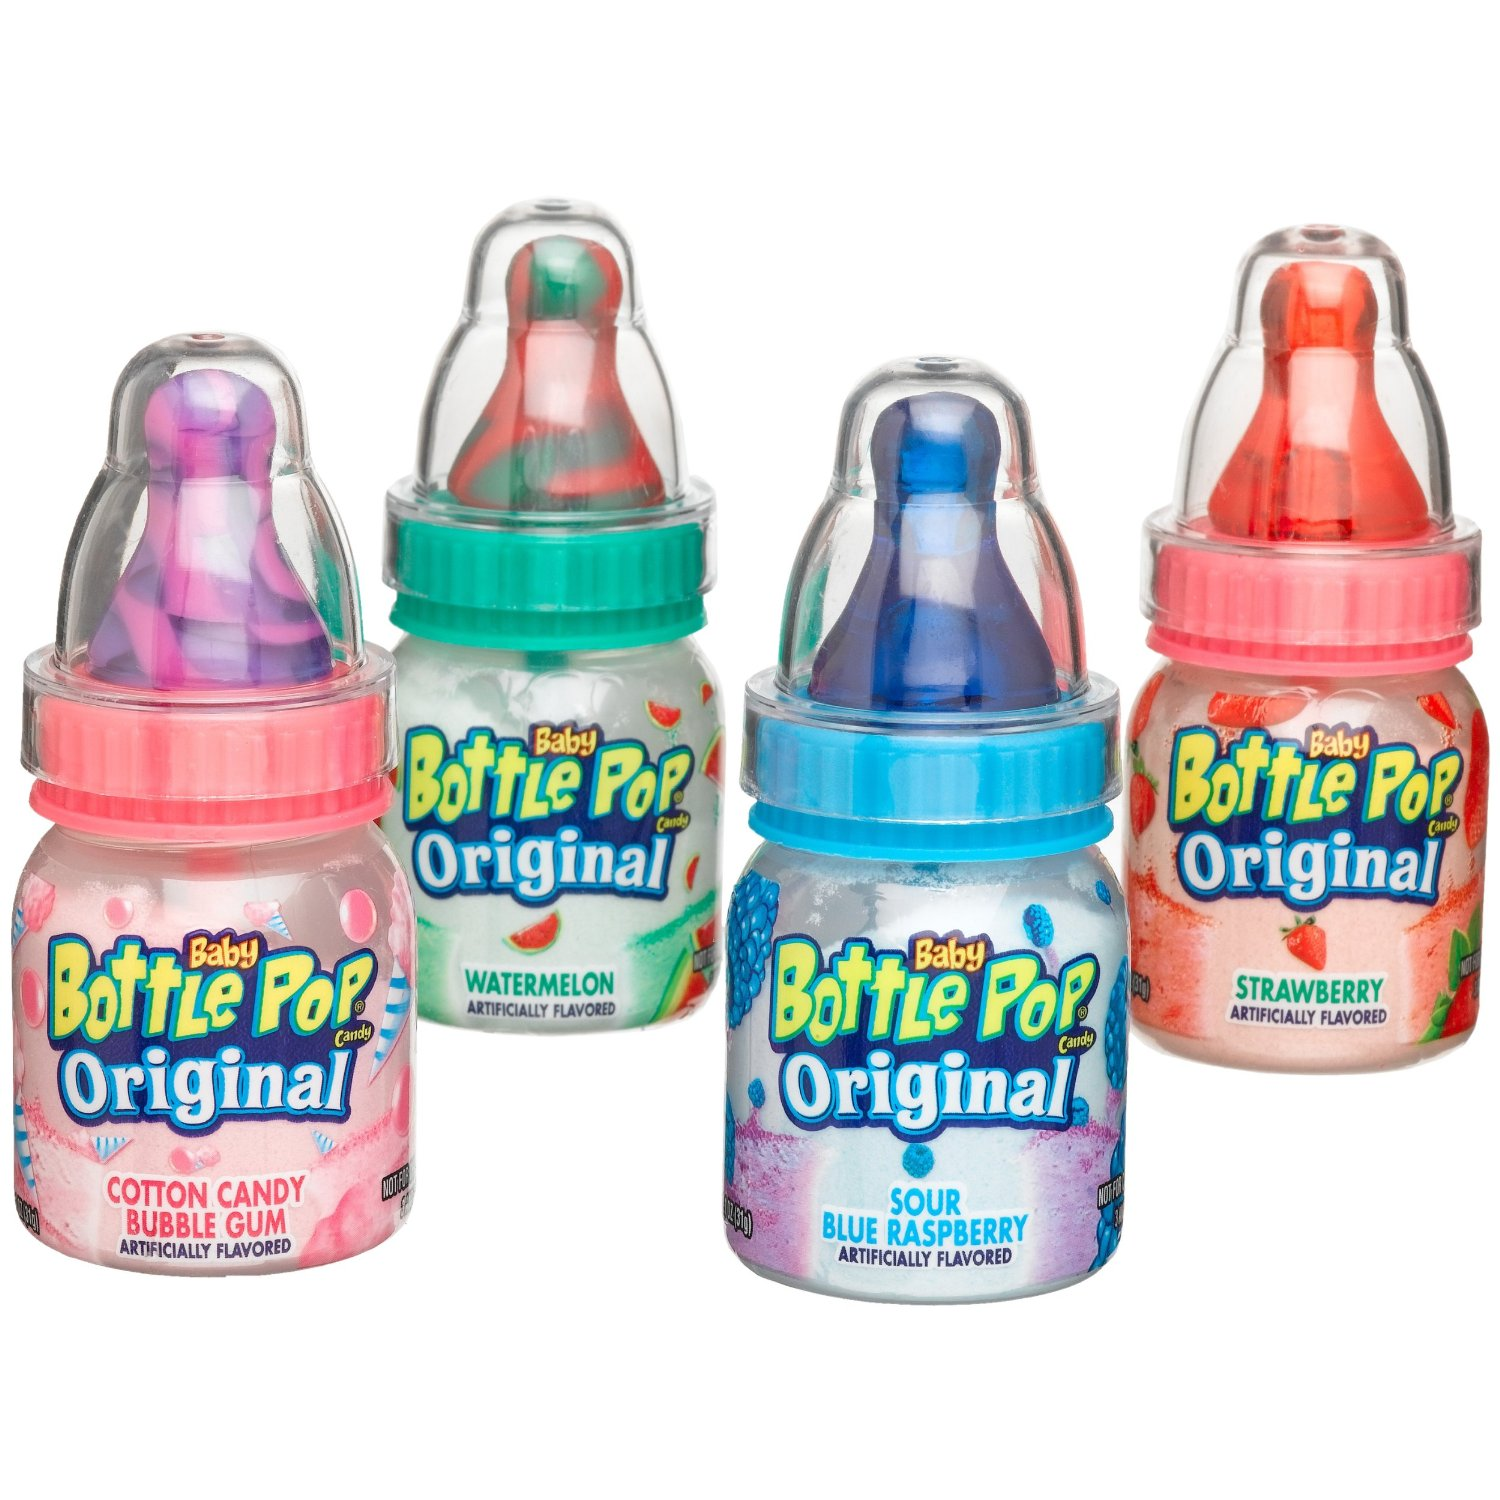 Fun Old Time Candy Products - Baby Bottle Pops| Homemade Recipes http://homemaderecipes.com/course/appetizers-snacks/old-time-candy